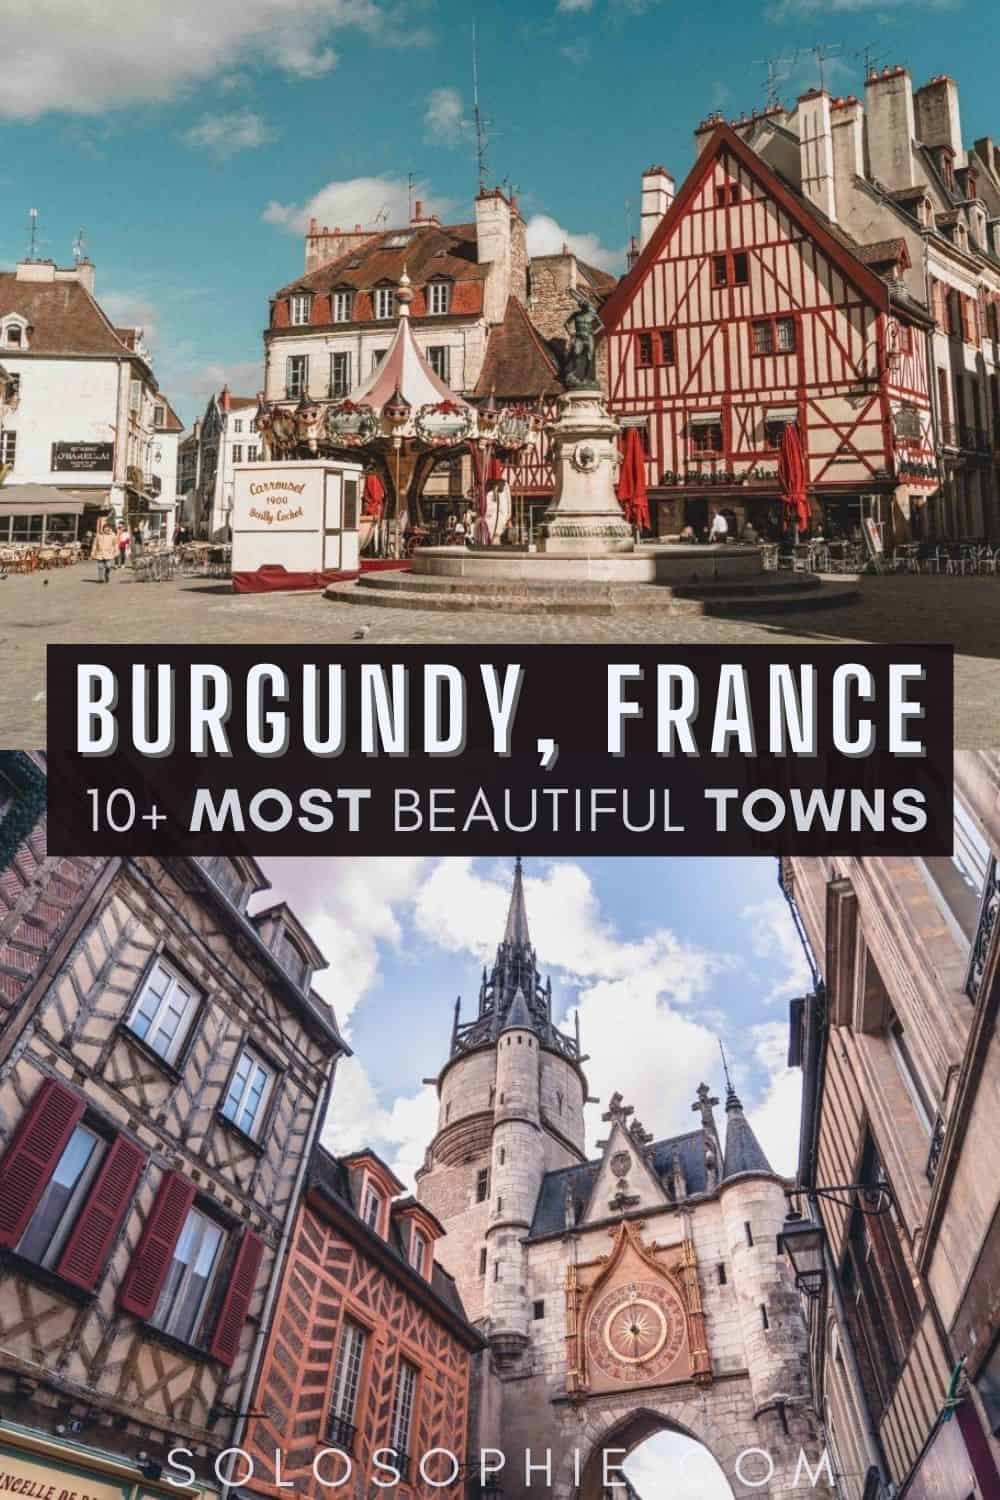 Best of Burgundy (Bourgogne) France/ 15 Beautiful Villages, Cities & Towns in Burgundy